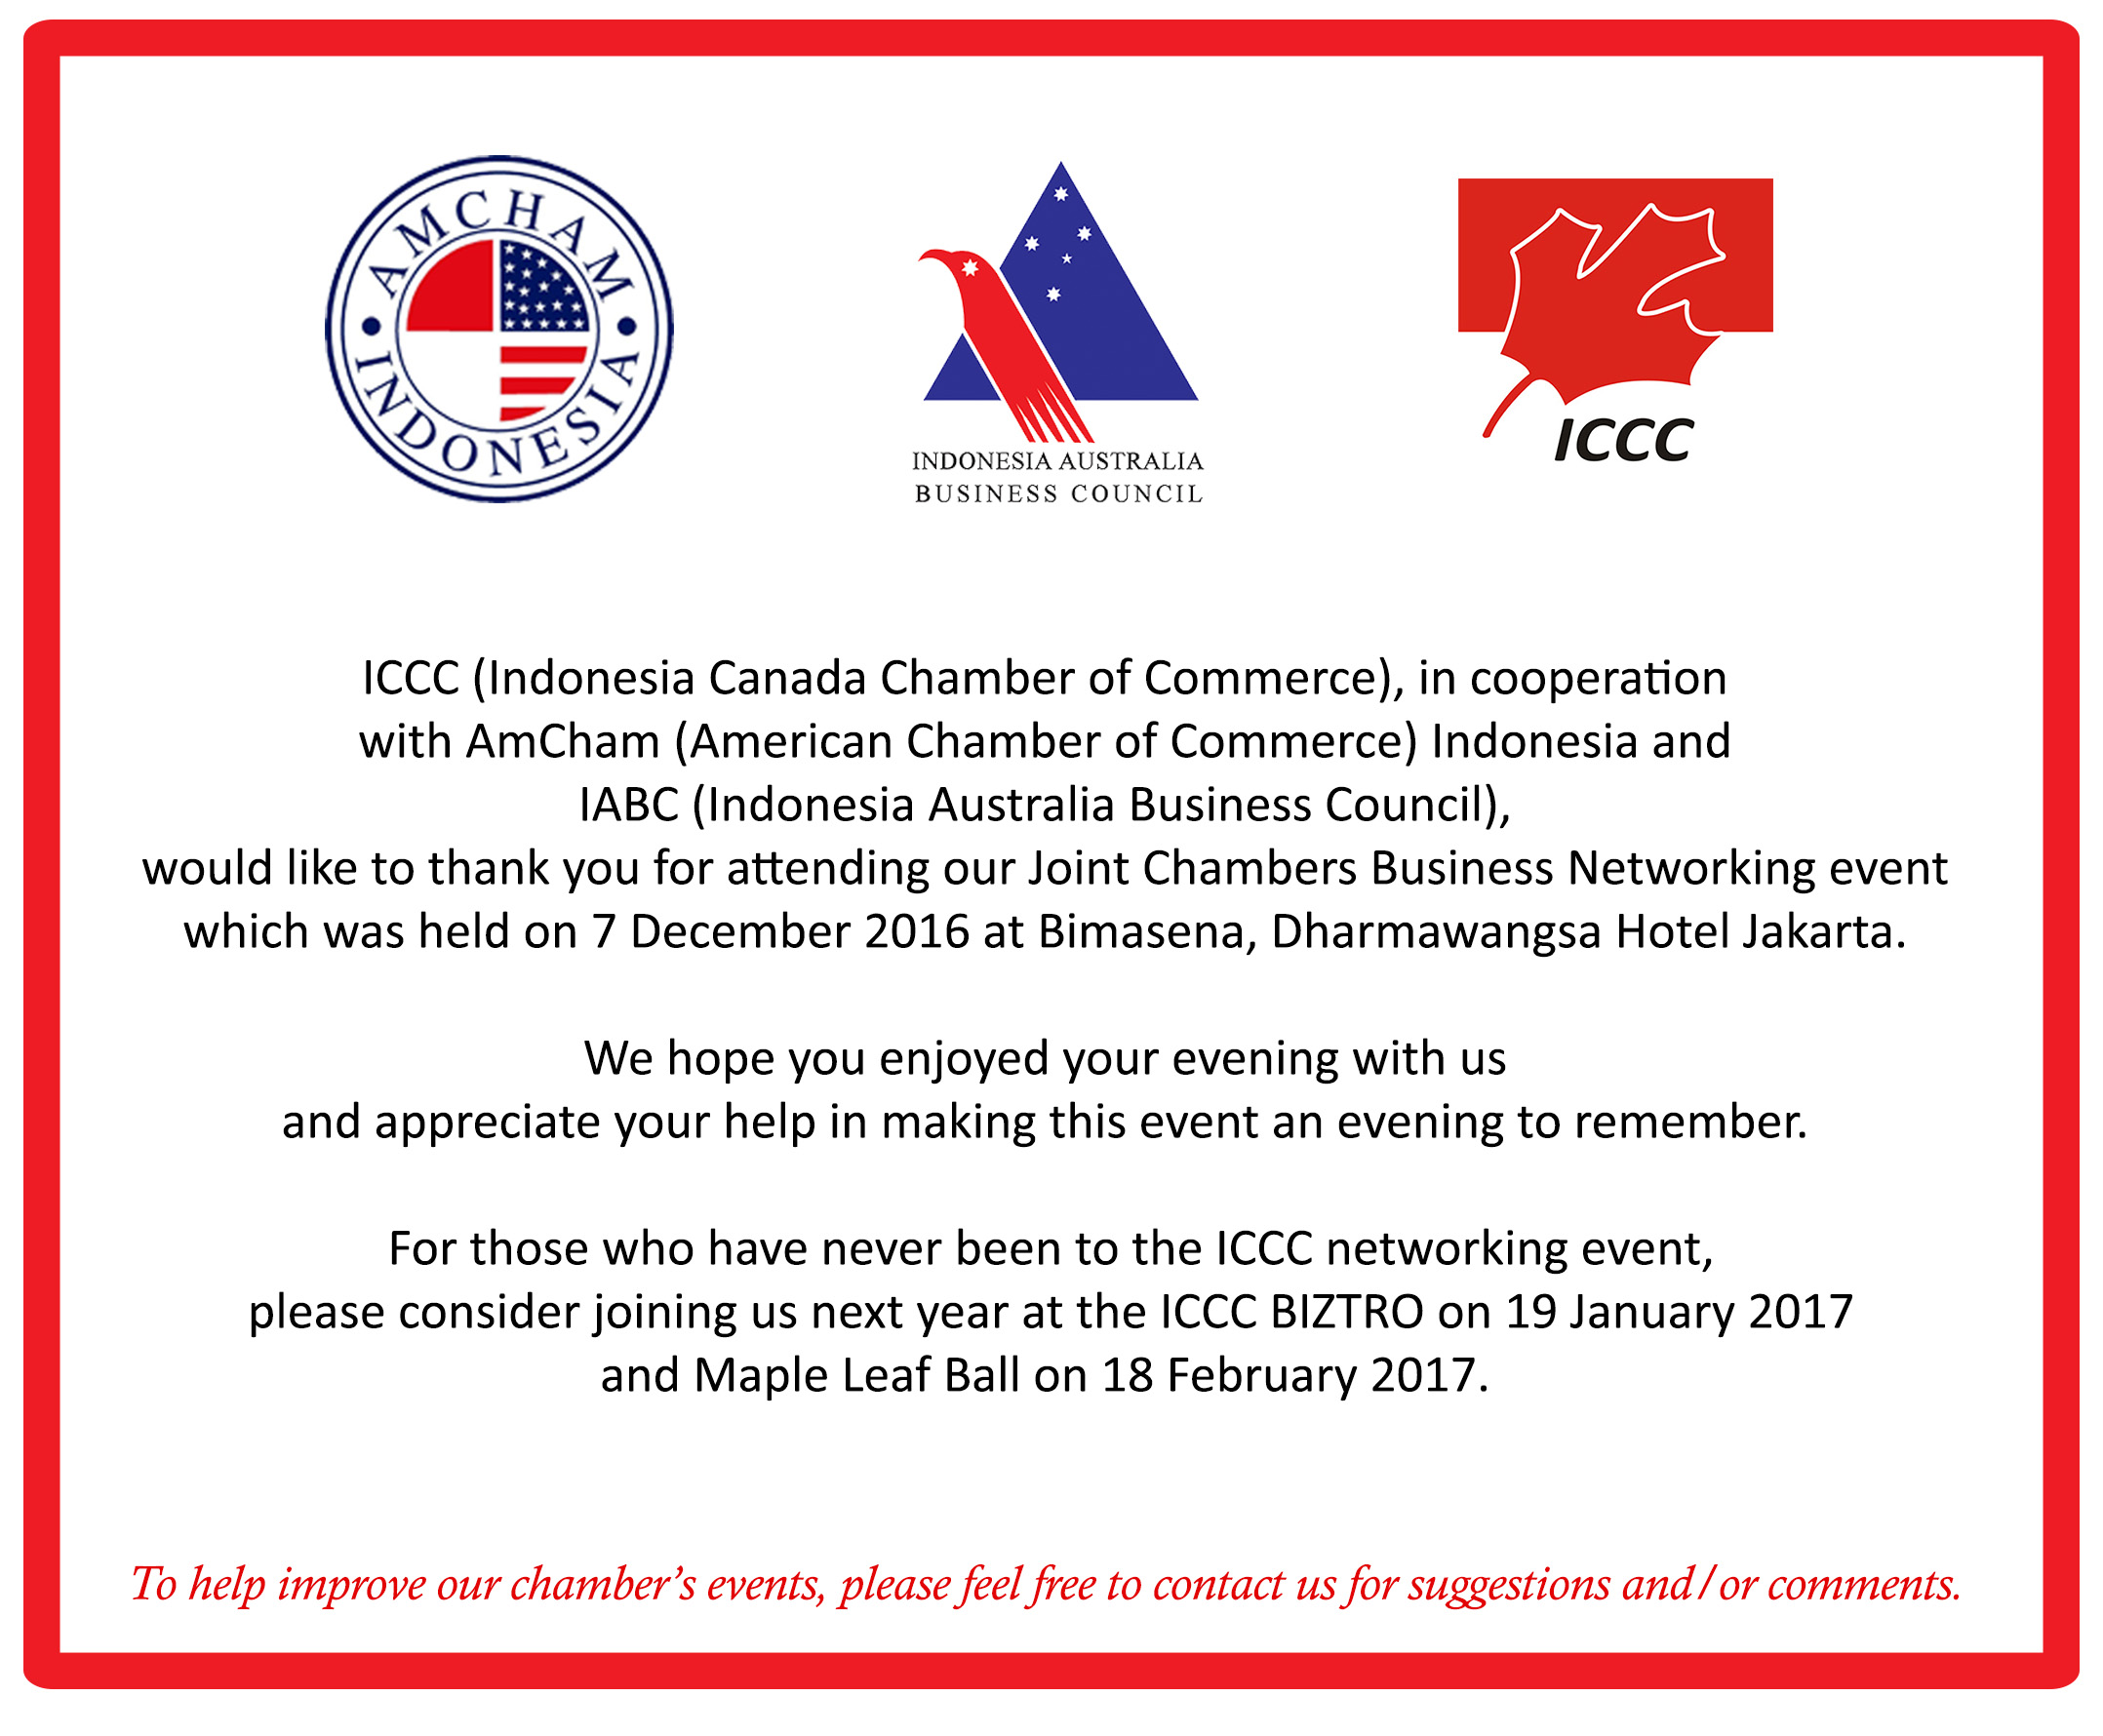 Thank you note joint event dec 2016